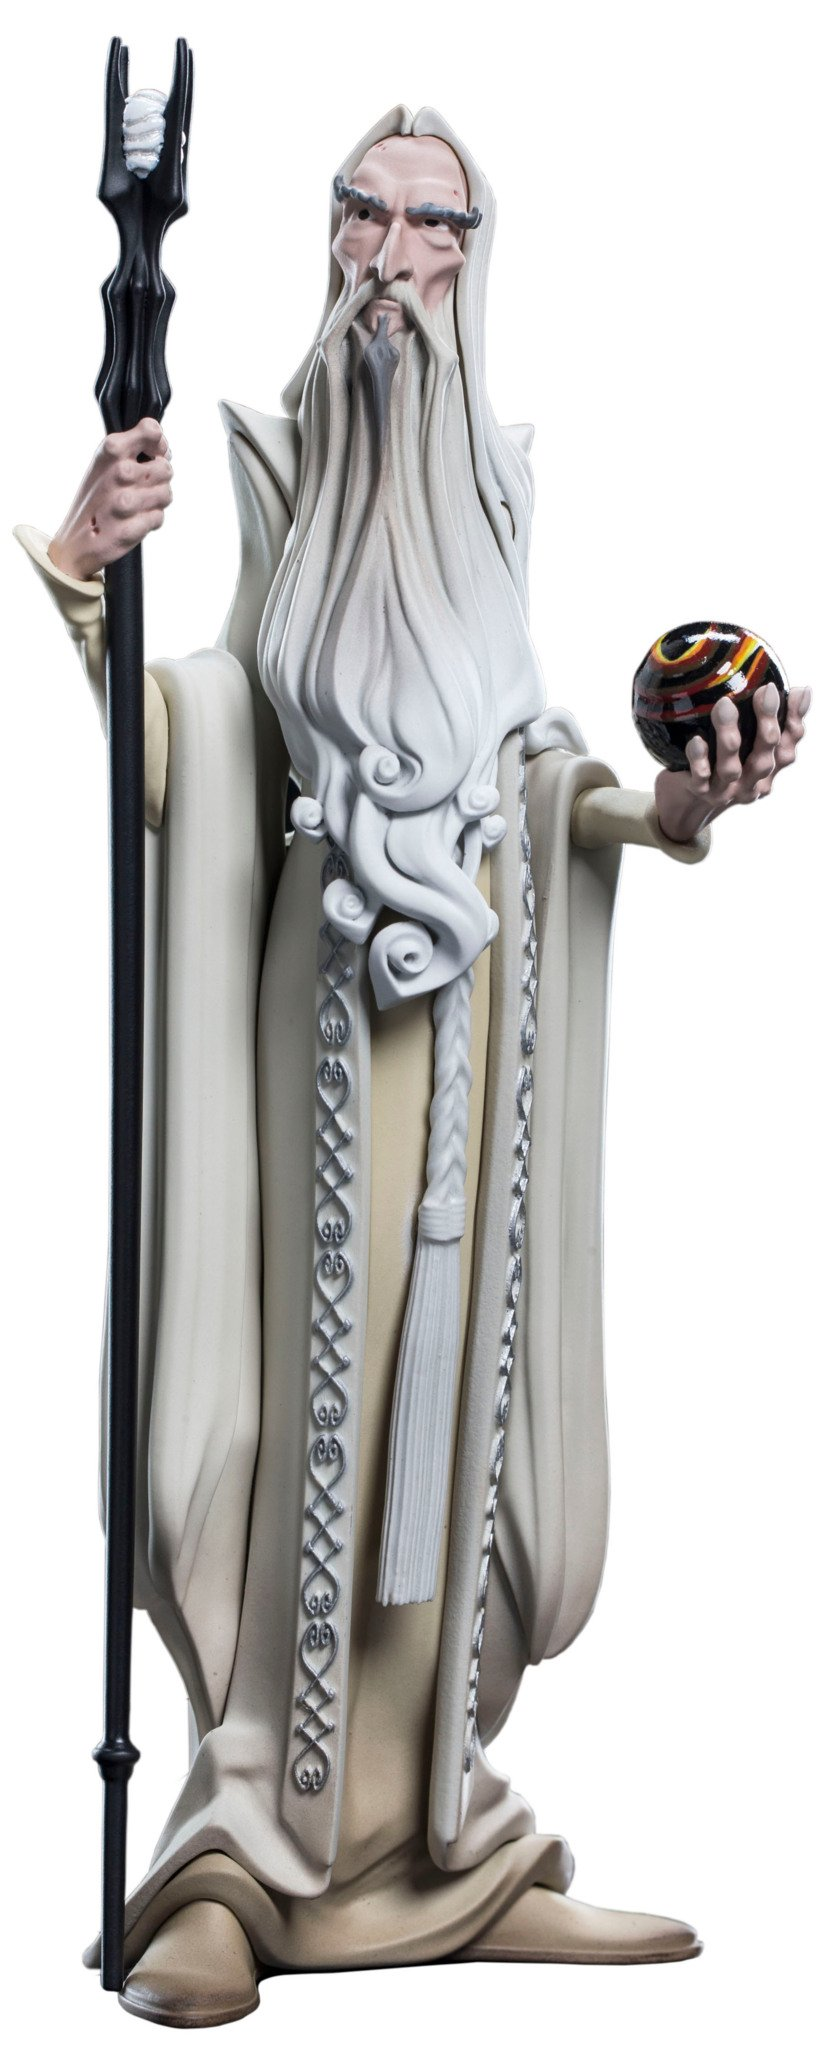 Lord of the Rings Mini Epics - Saruman